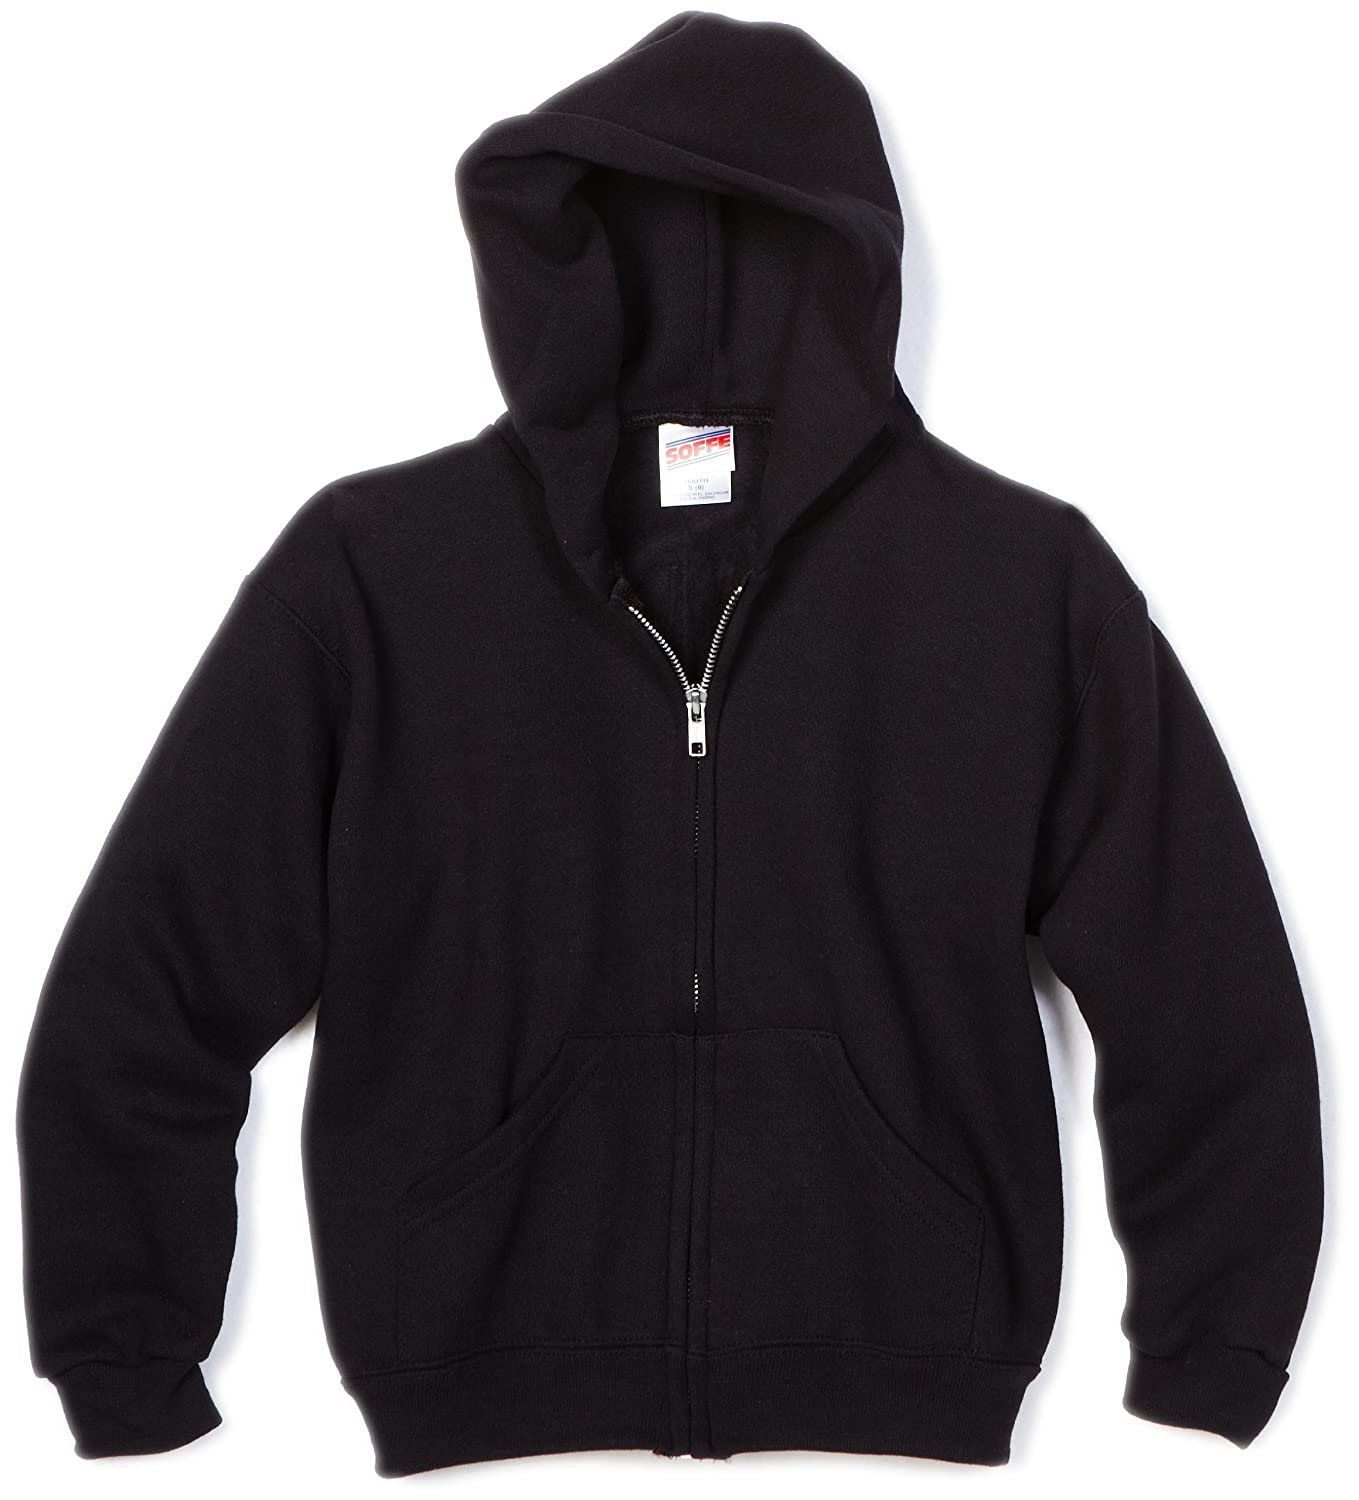 MJ Soffe Big Boys' Zip Hooded Sweatshirt